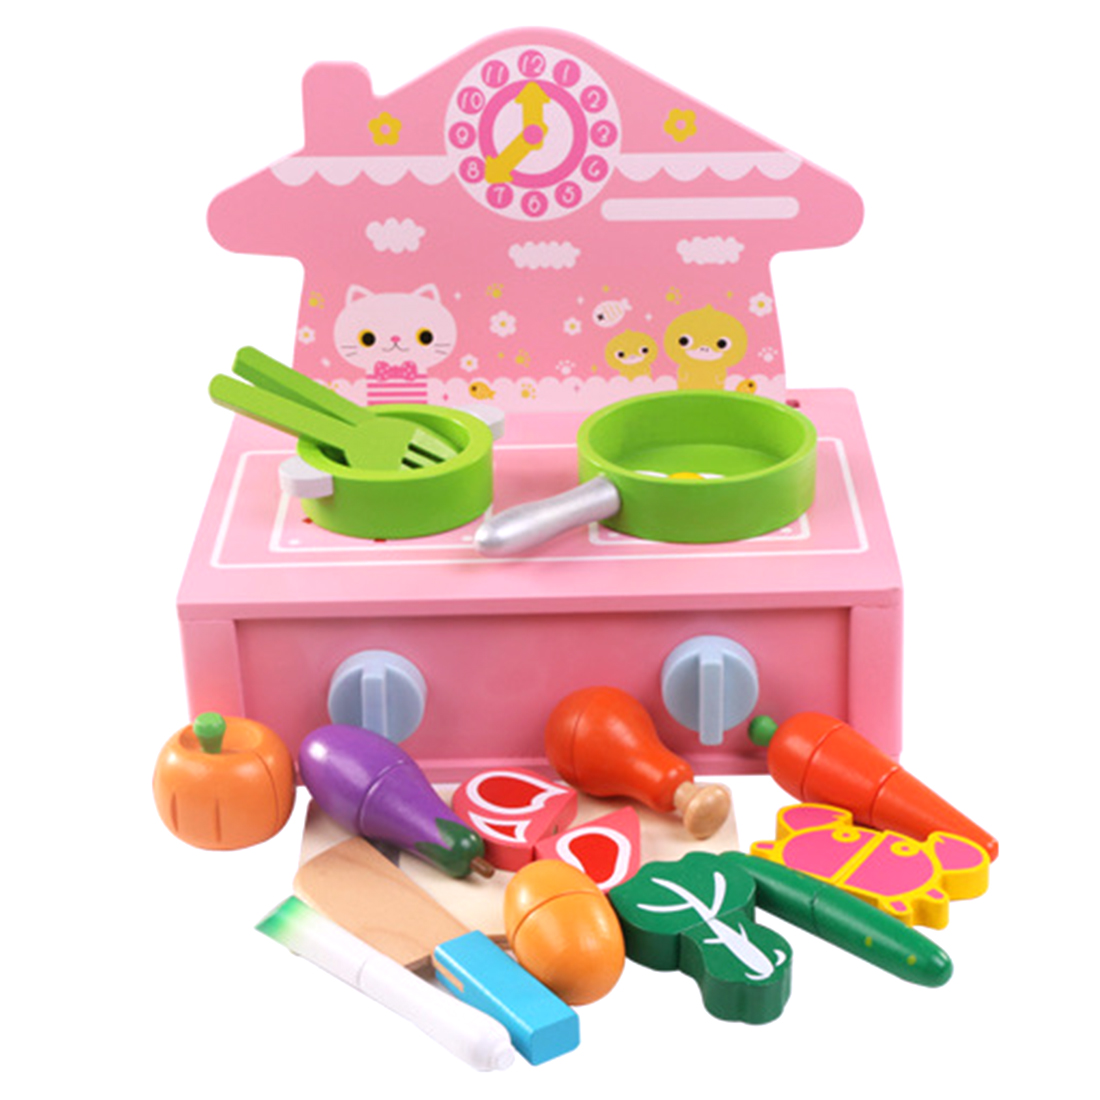 22Pcs Children Pretend Play Toys Magnetism Kitchen Stove Cooking Cutting Playset Pretend Play Early Education Toy For Kids Gifts22Pcs Children Pretend Play Toys Magnetism Kitchen Stove Cooking Cutting Playset Pretend Play Early Education Toy For Kids Gifts